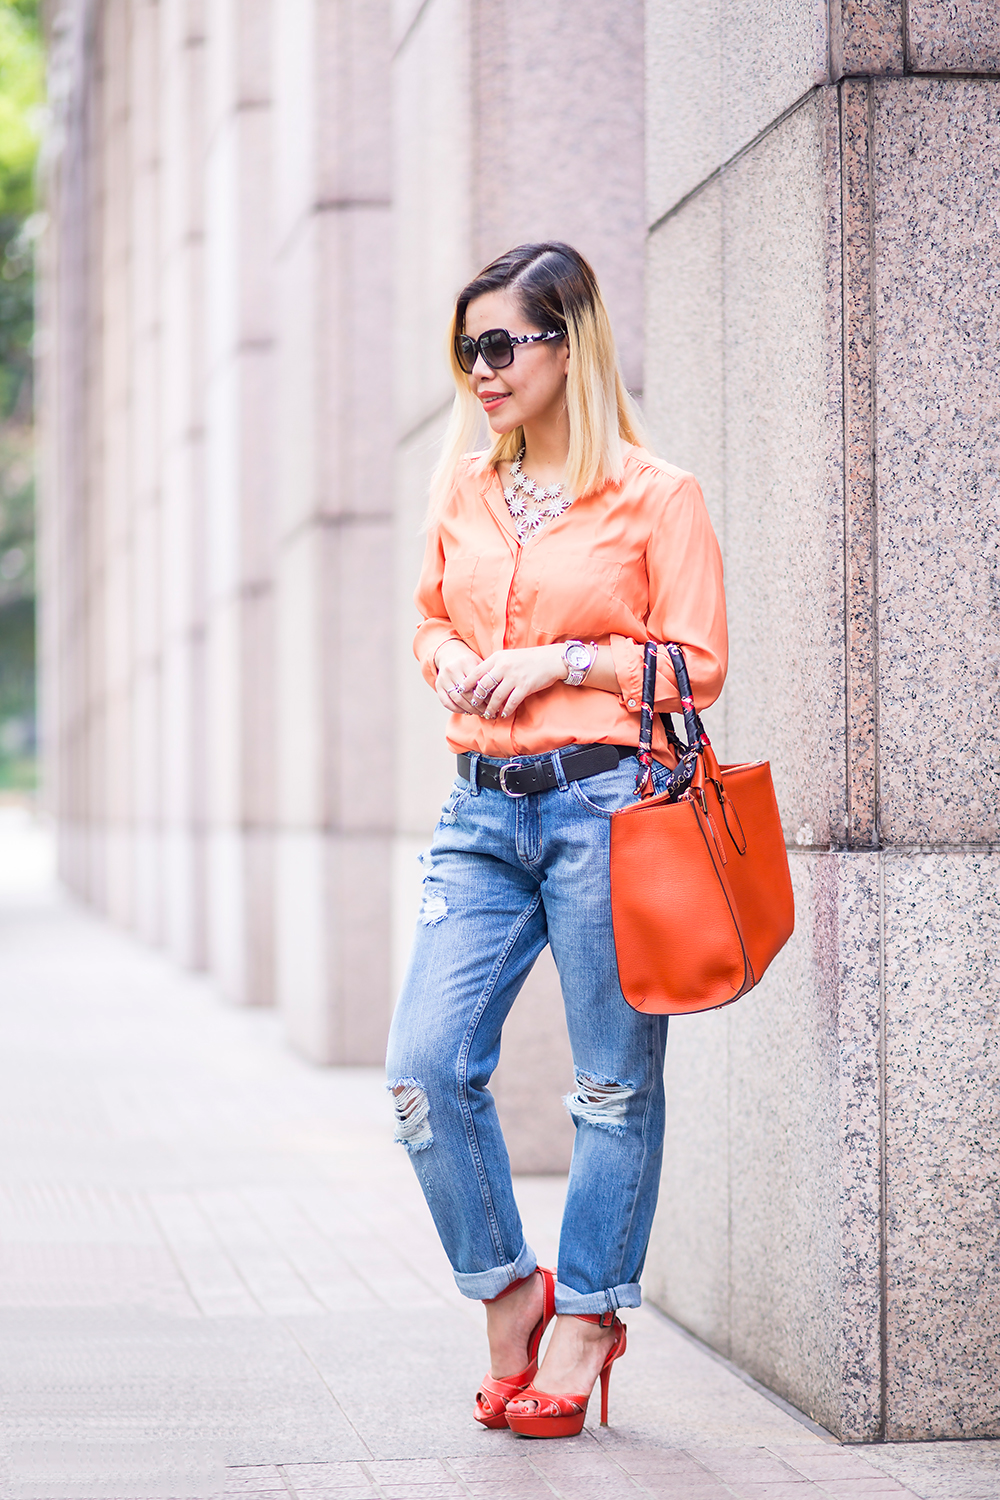 CrystalPhuong- Singapore Fashion Blog- Boyfriend jeans on repeat